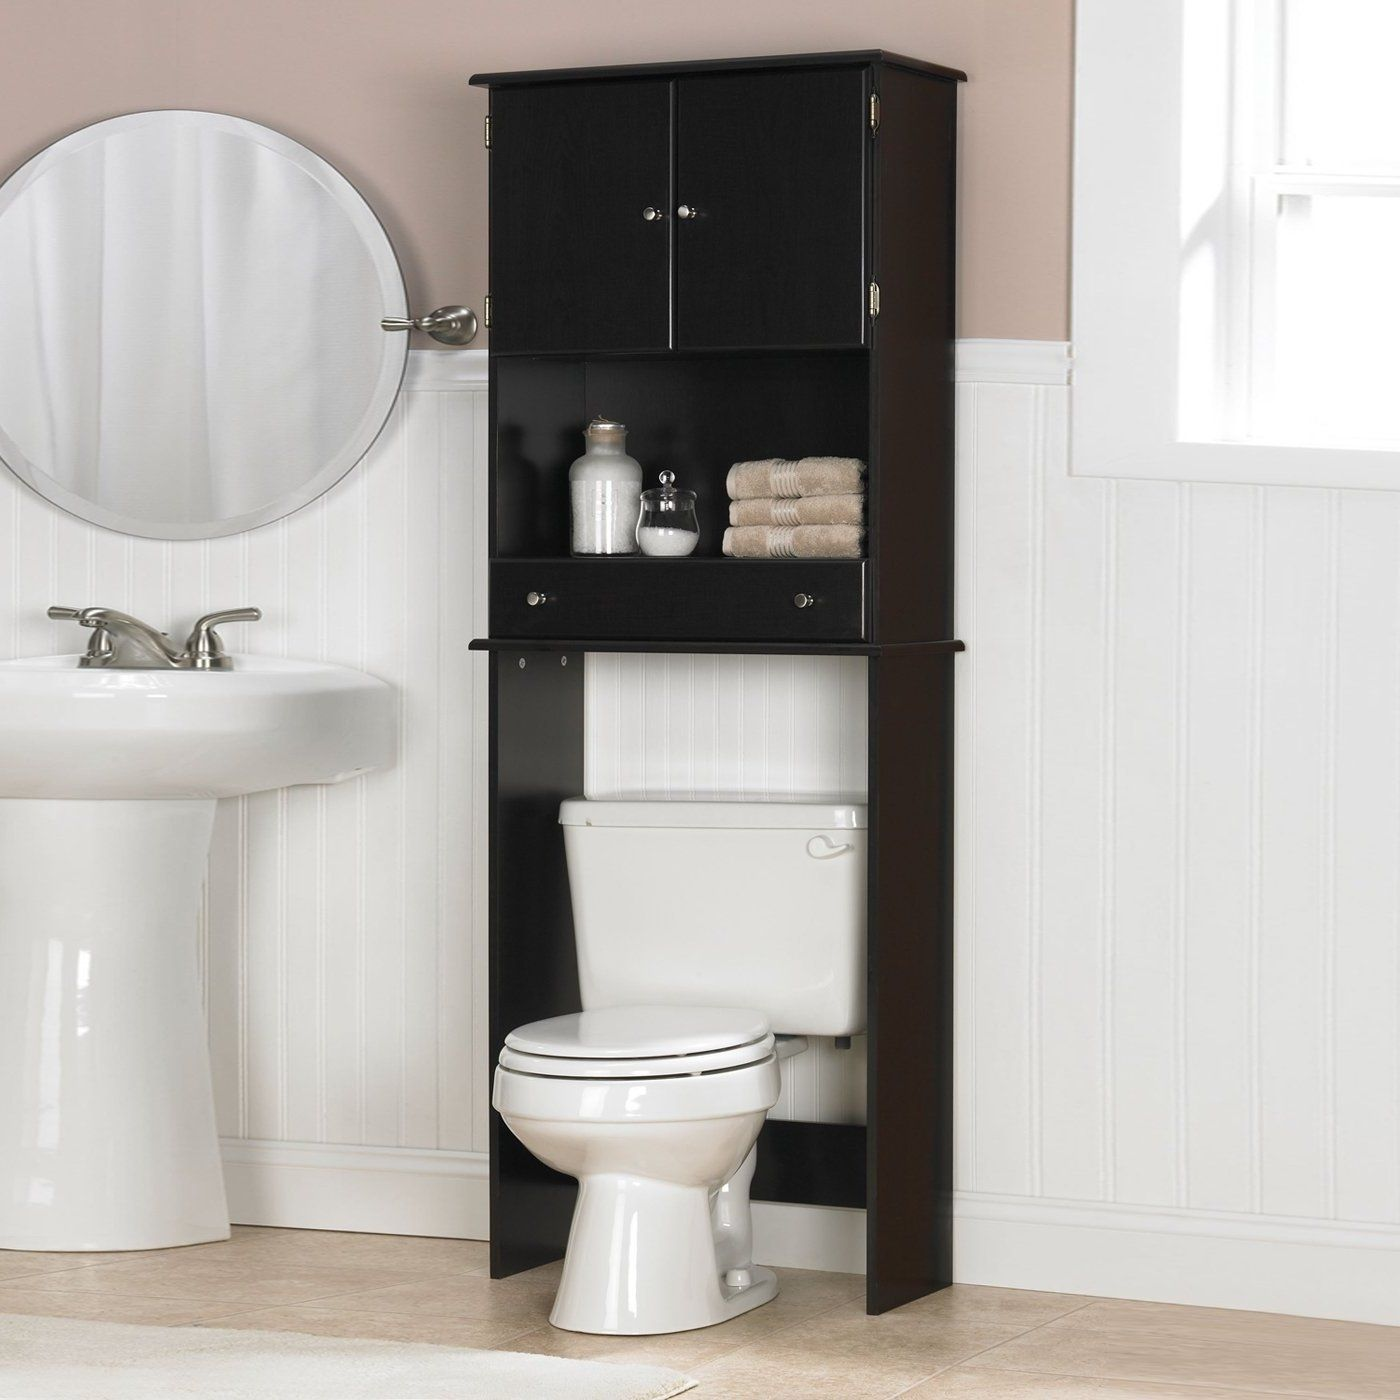 Image of: Over The Toilet Shelf Idyllic Bathroom Cabinet Above ...